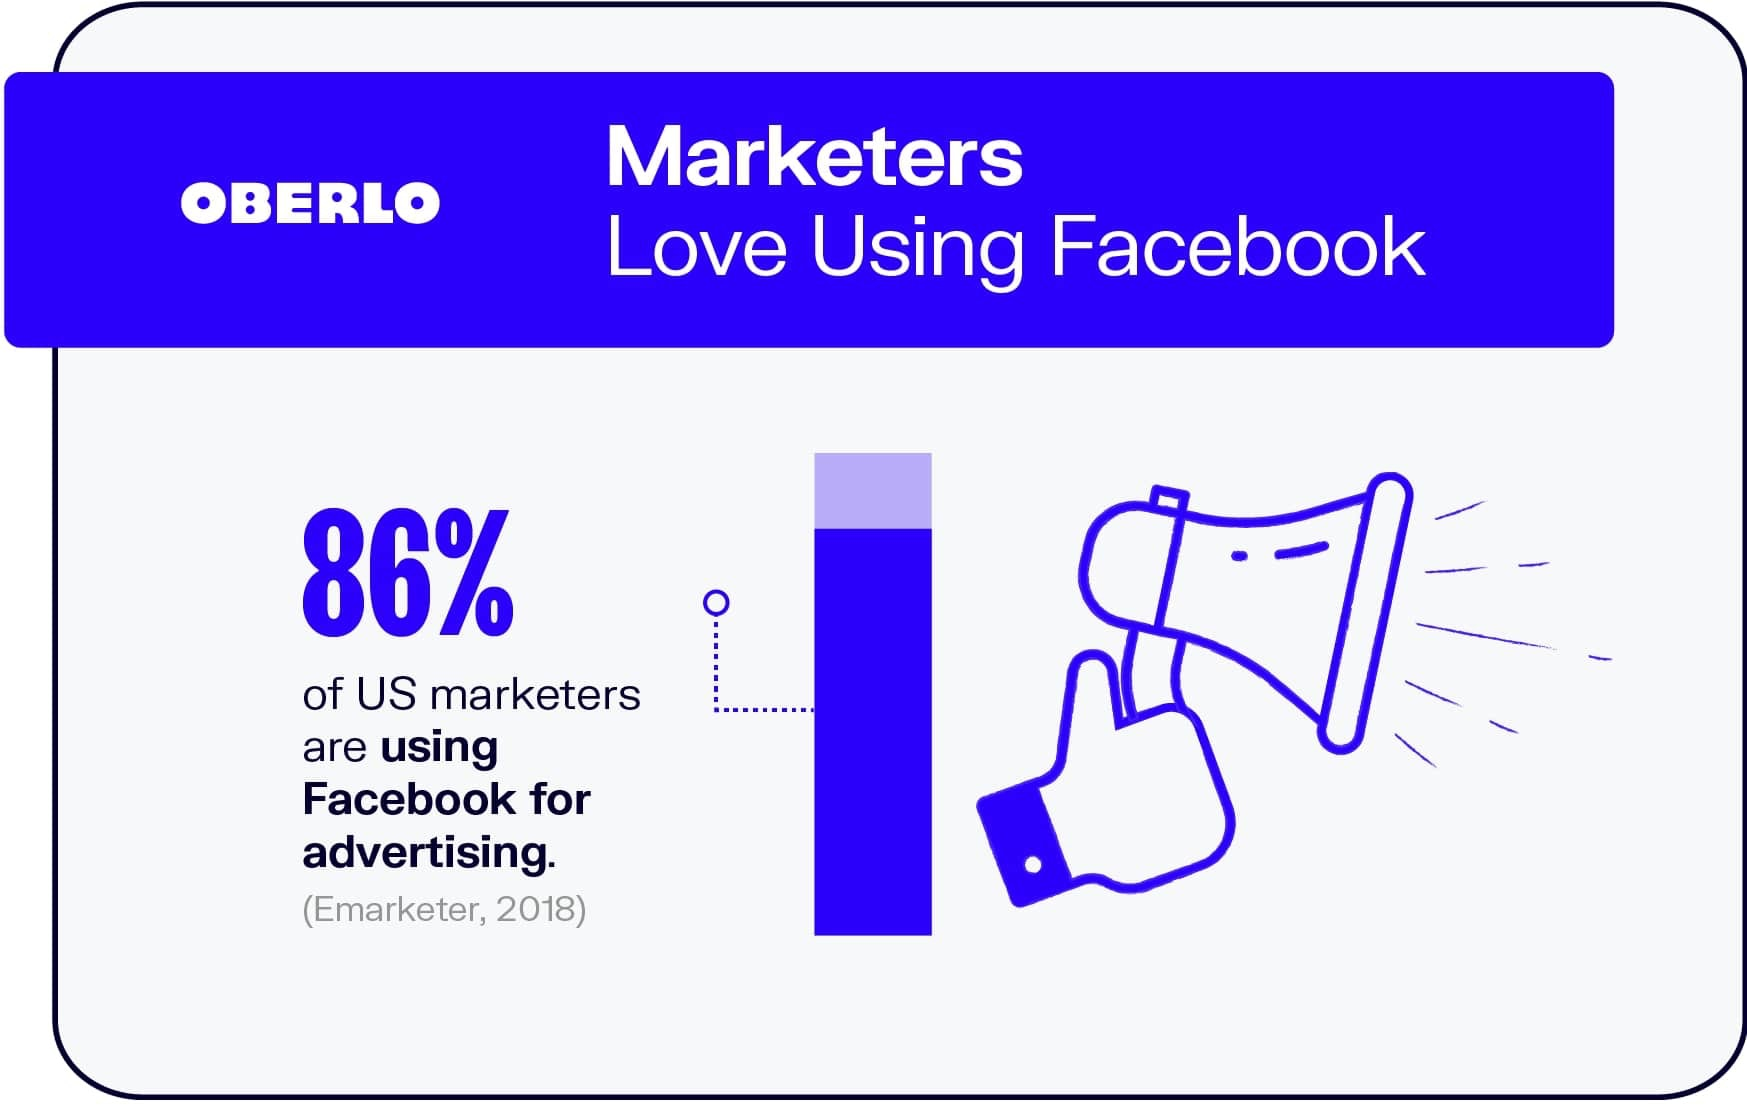 Marketers Love Using Facebook